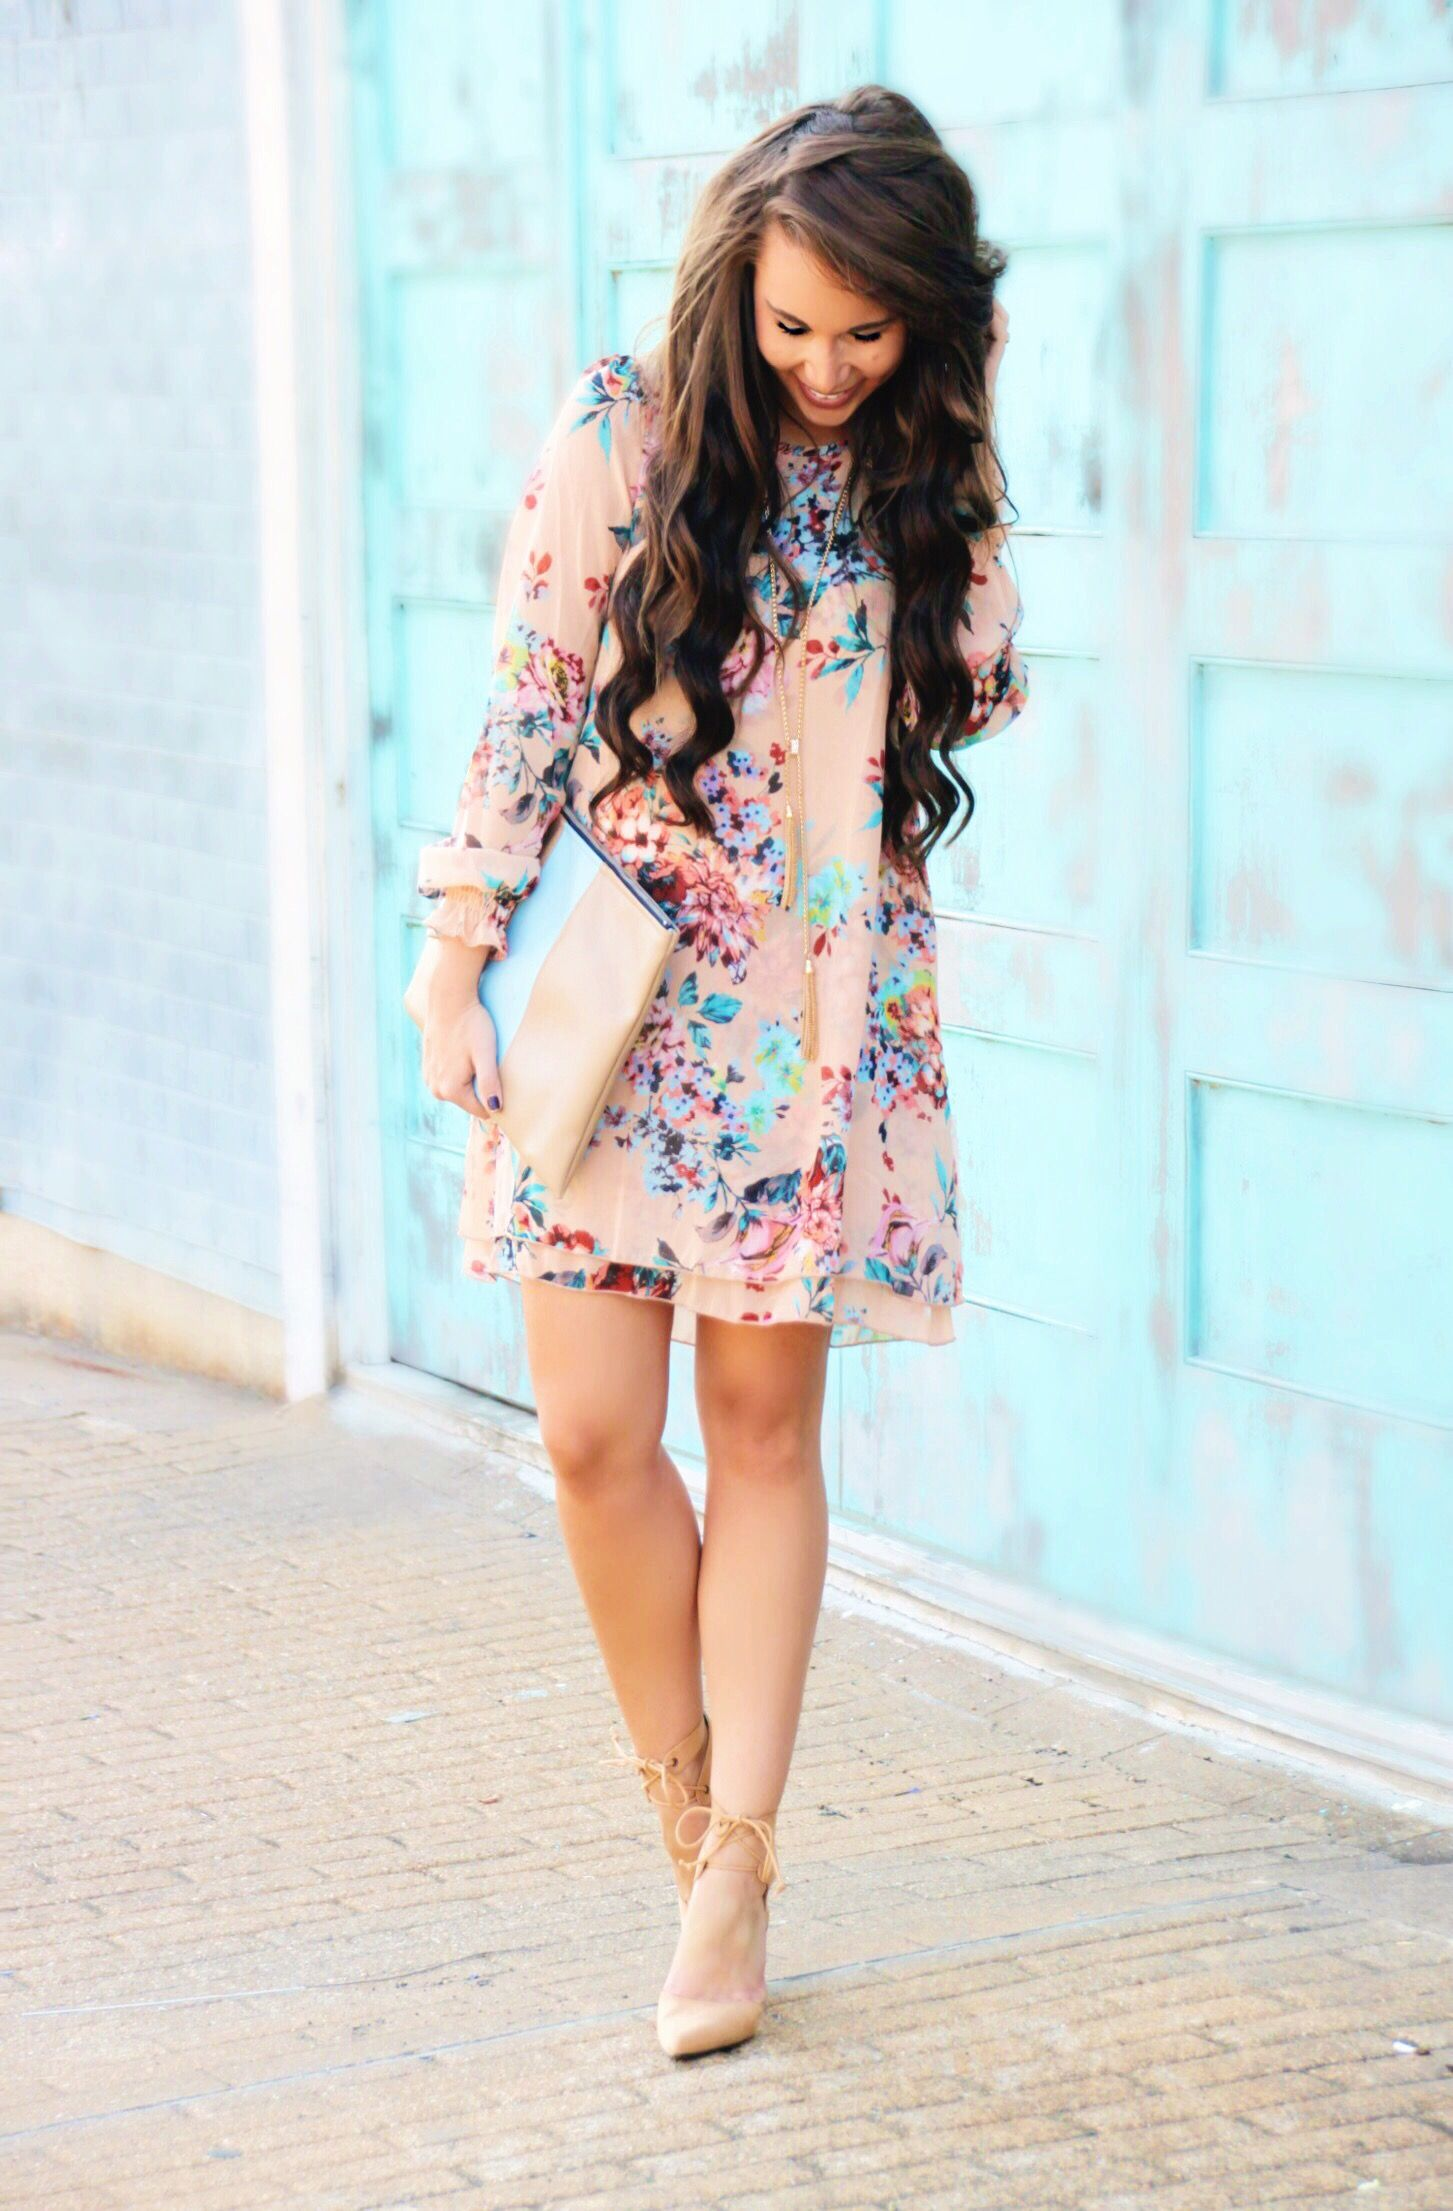 ccbc8fd0de I like the colors of this dress and floral pattern for Easter. | My ...